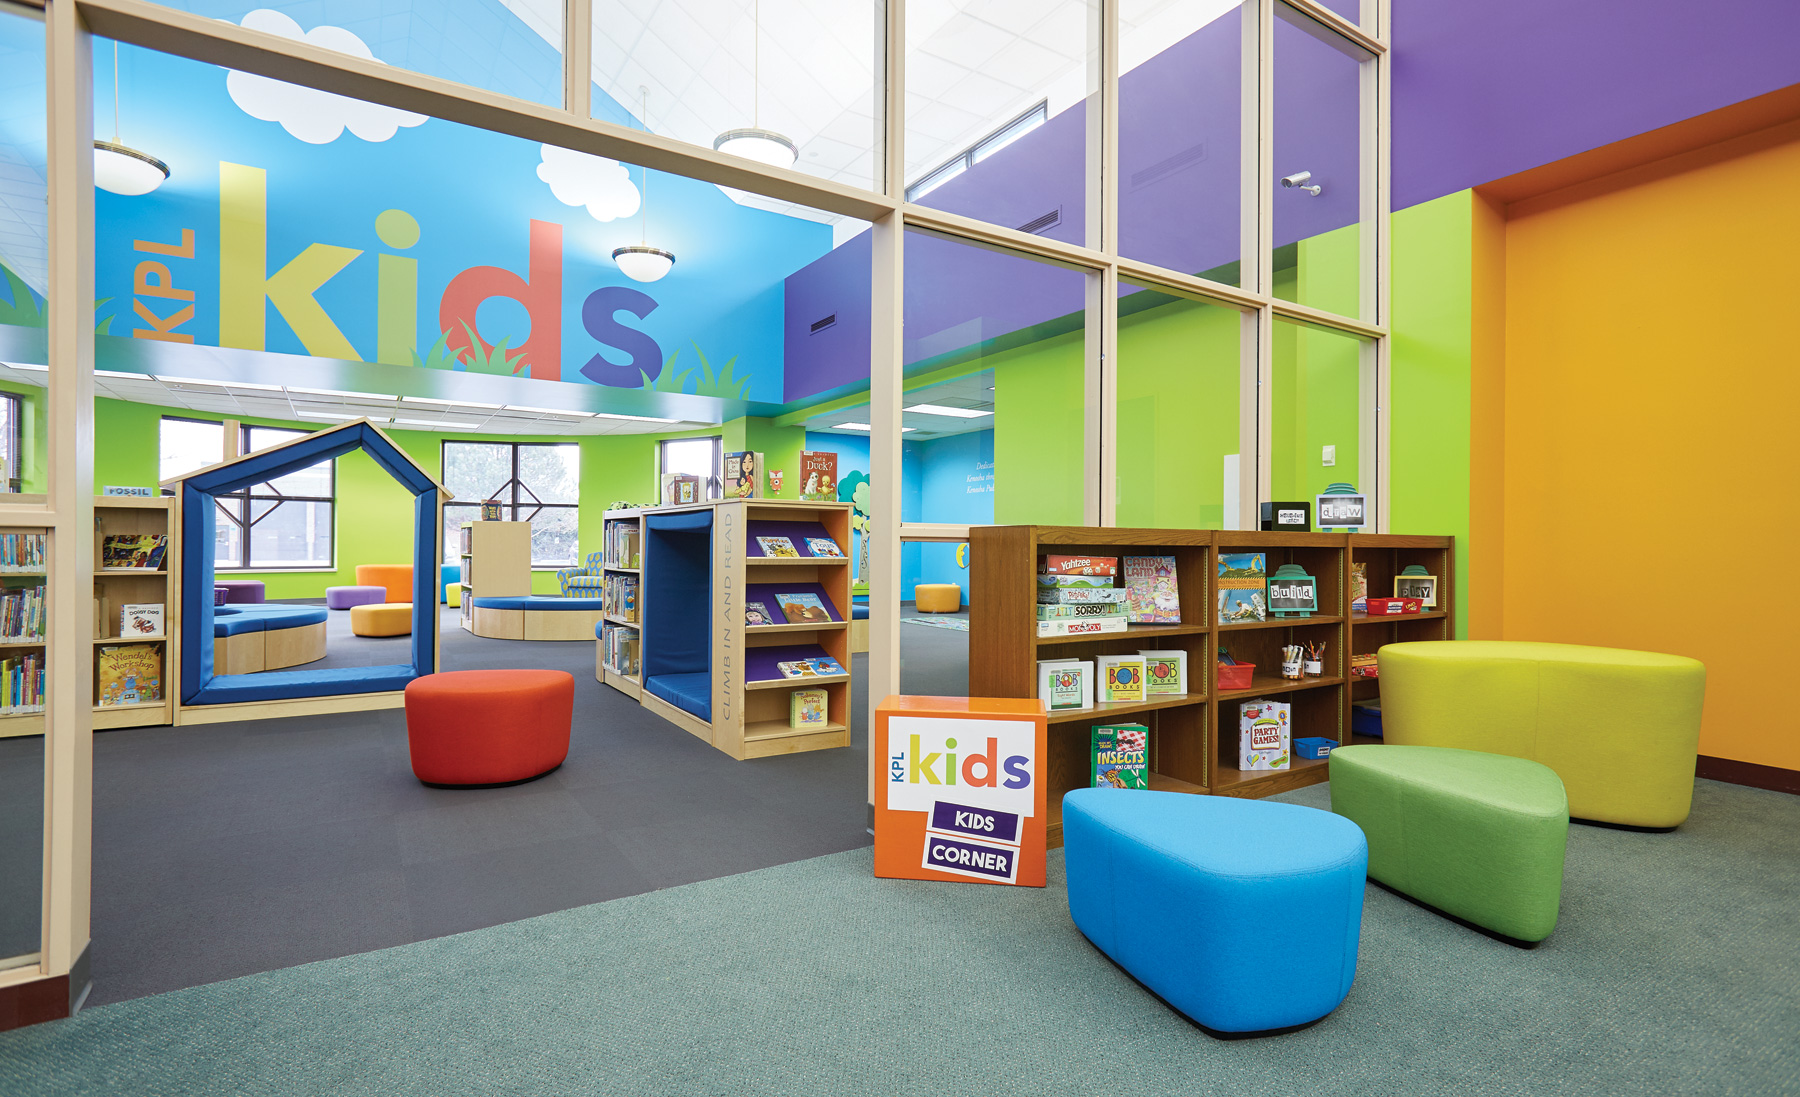 Kenosha Public Library's light, colorful and open library spaces.